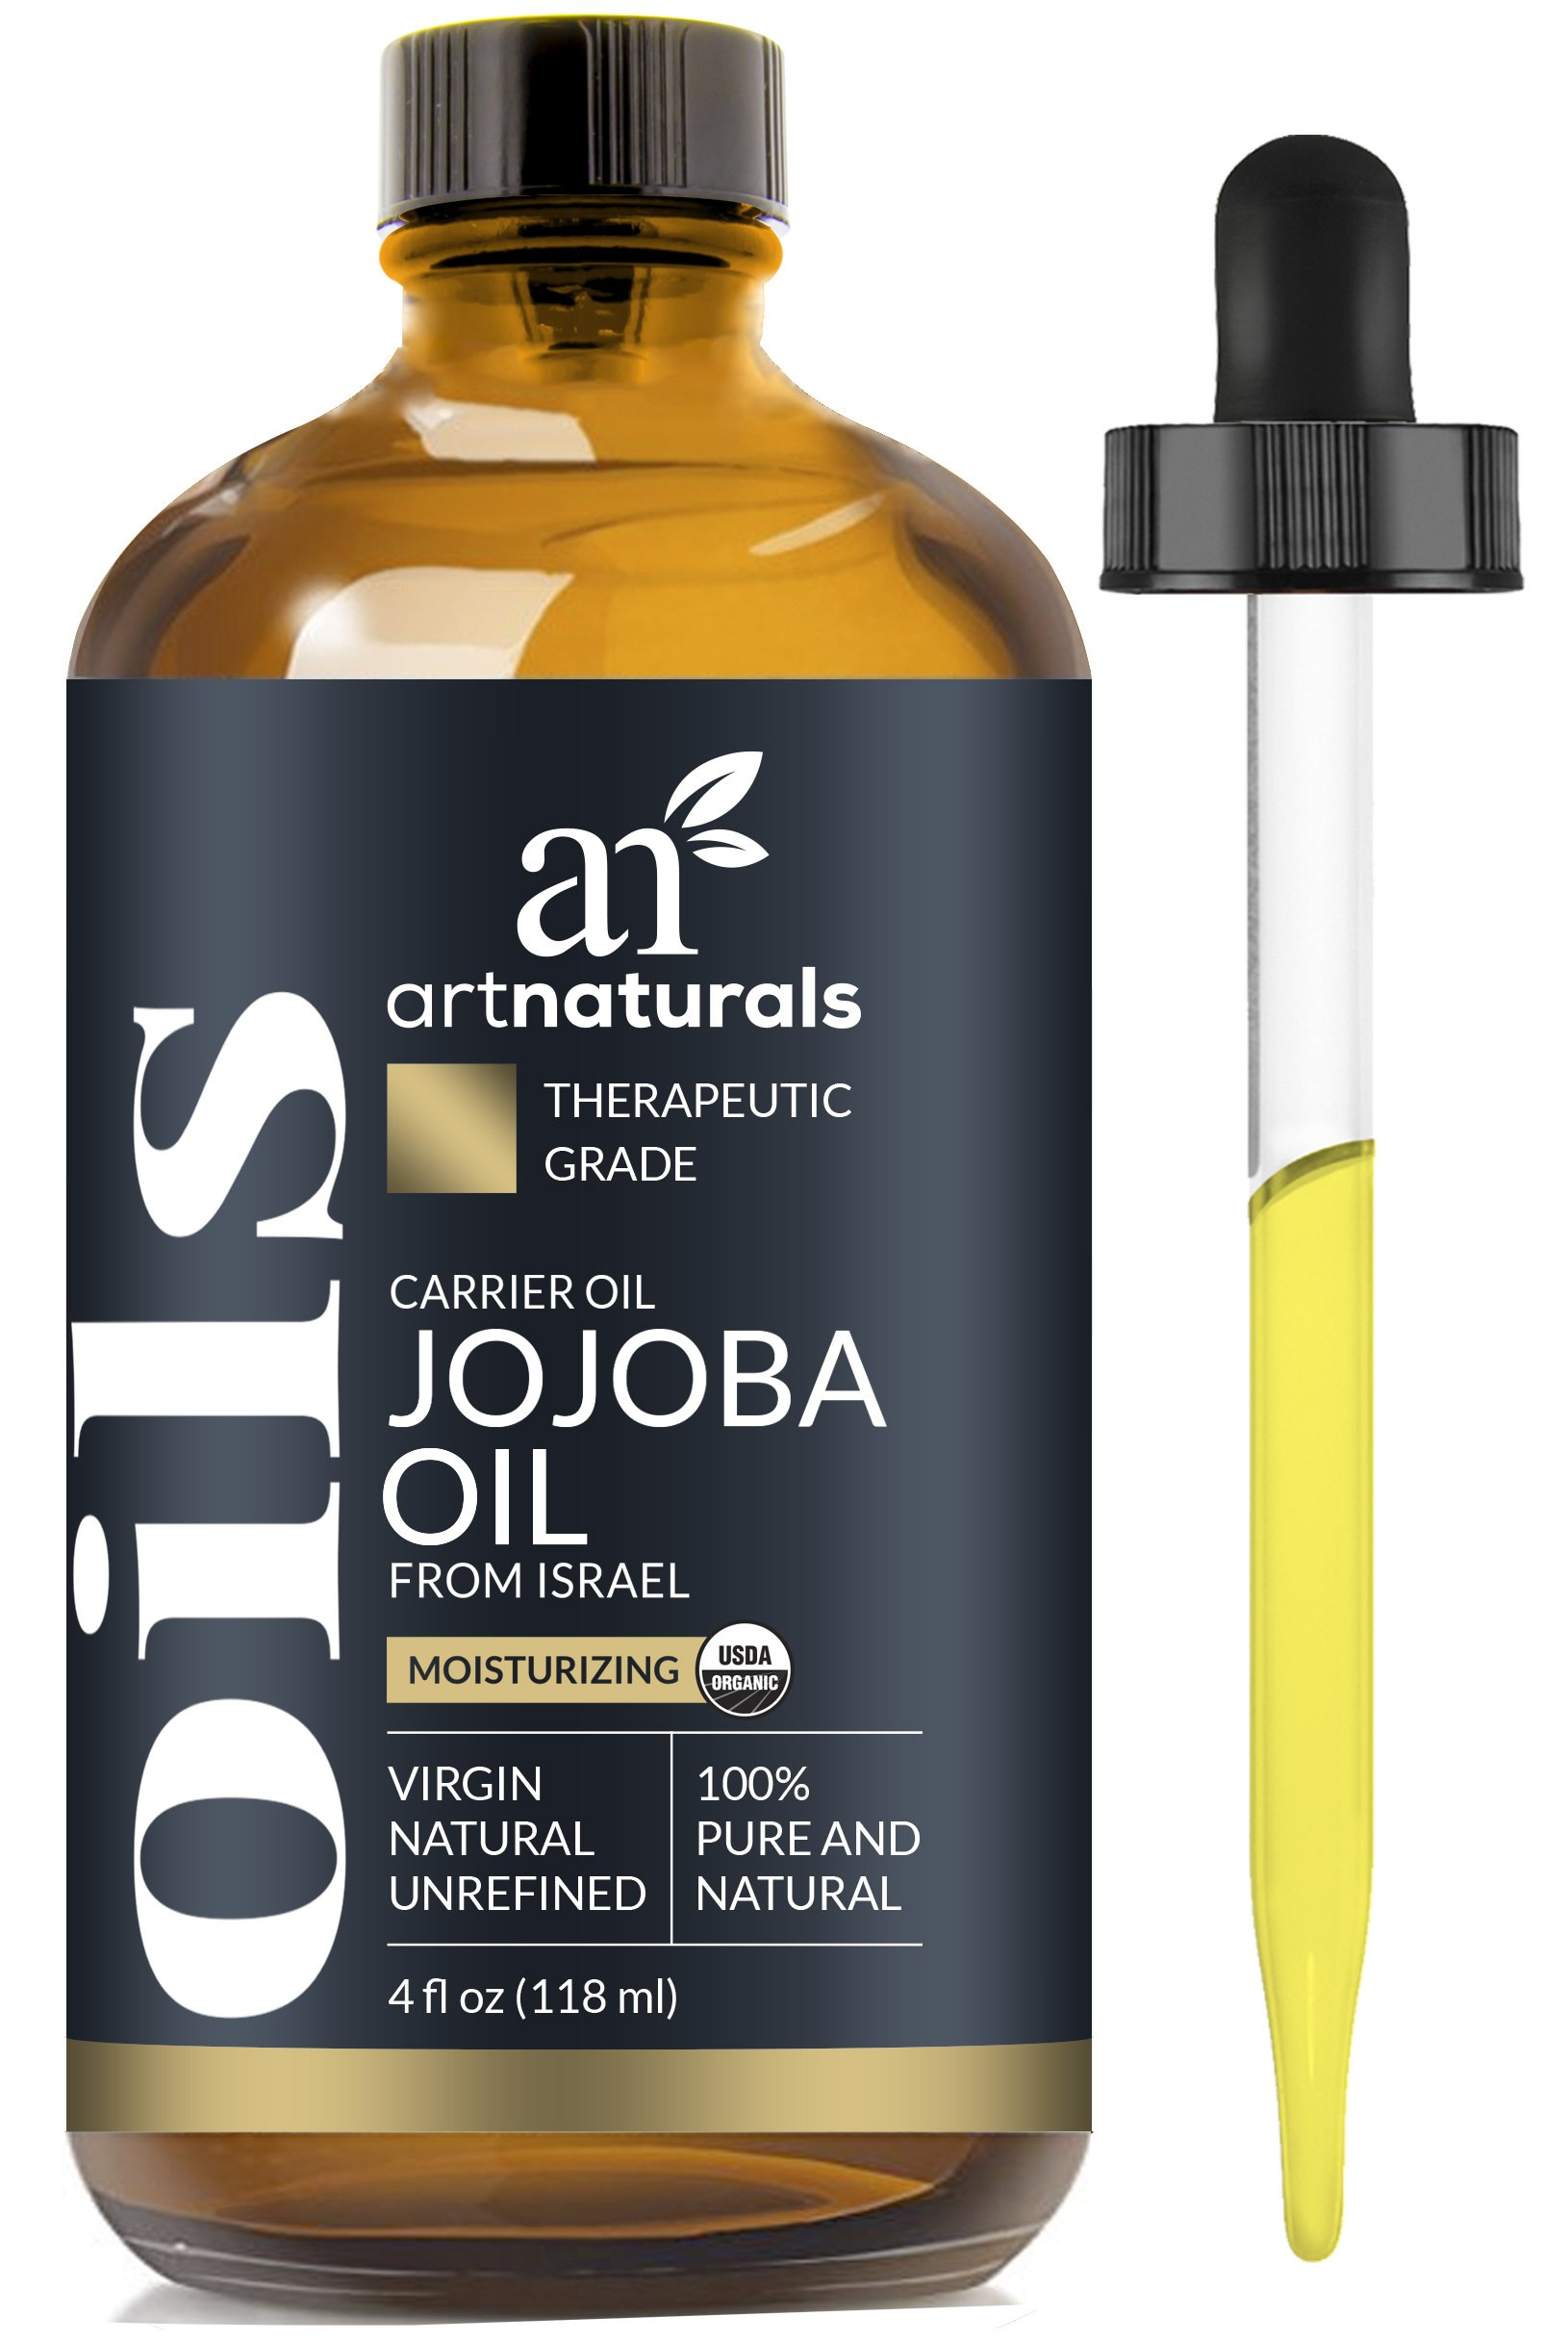 ArtNaturals Organic Jojoba Oil - 4 oz - 100% Pure & USDA Certified Cold Pressed Natural & Unrefined- Great Moisturizer for Face, Hair, Skin, Nails, Lips, Cuticles, Stretch Marks & Sensitive Skin